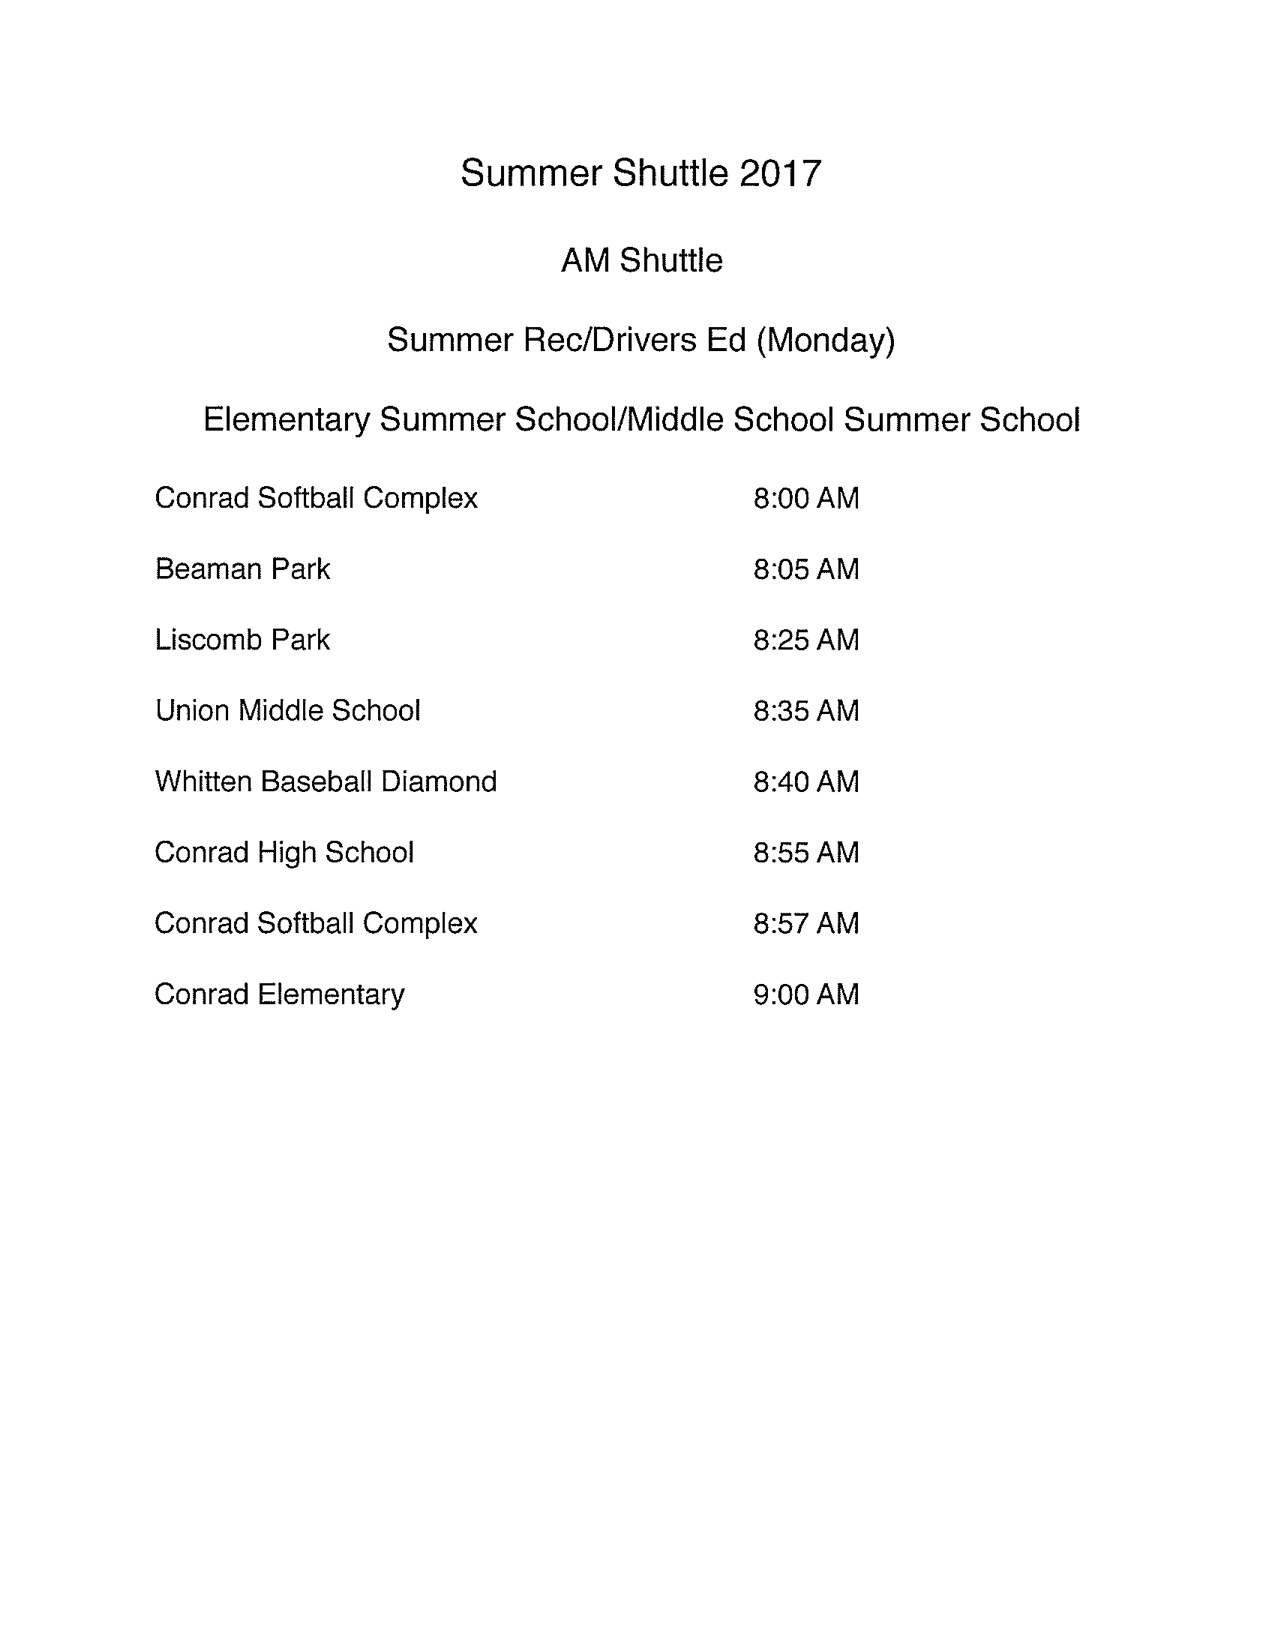 Summer Shuttle Schedule